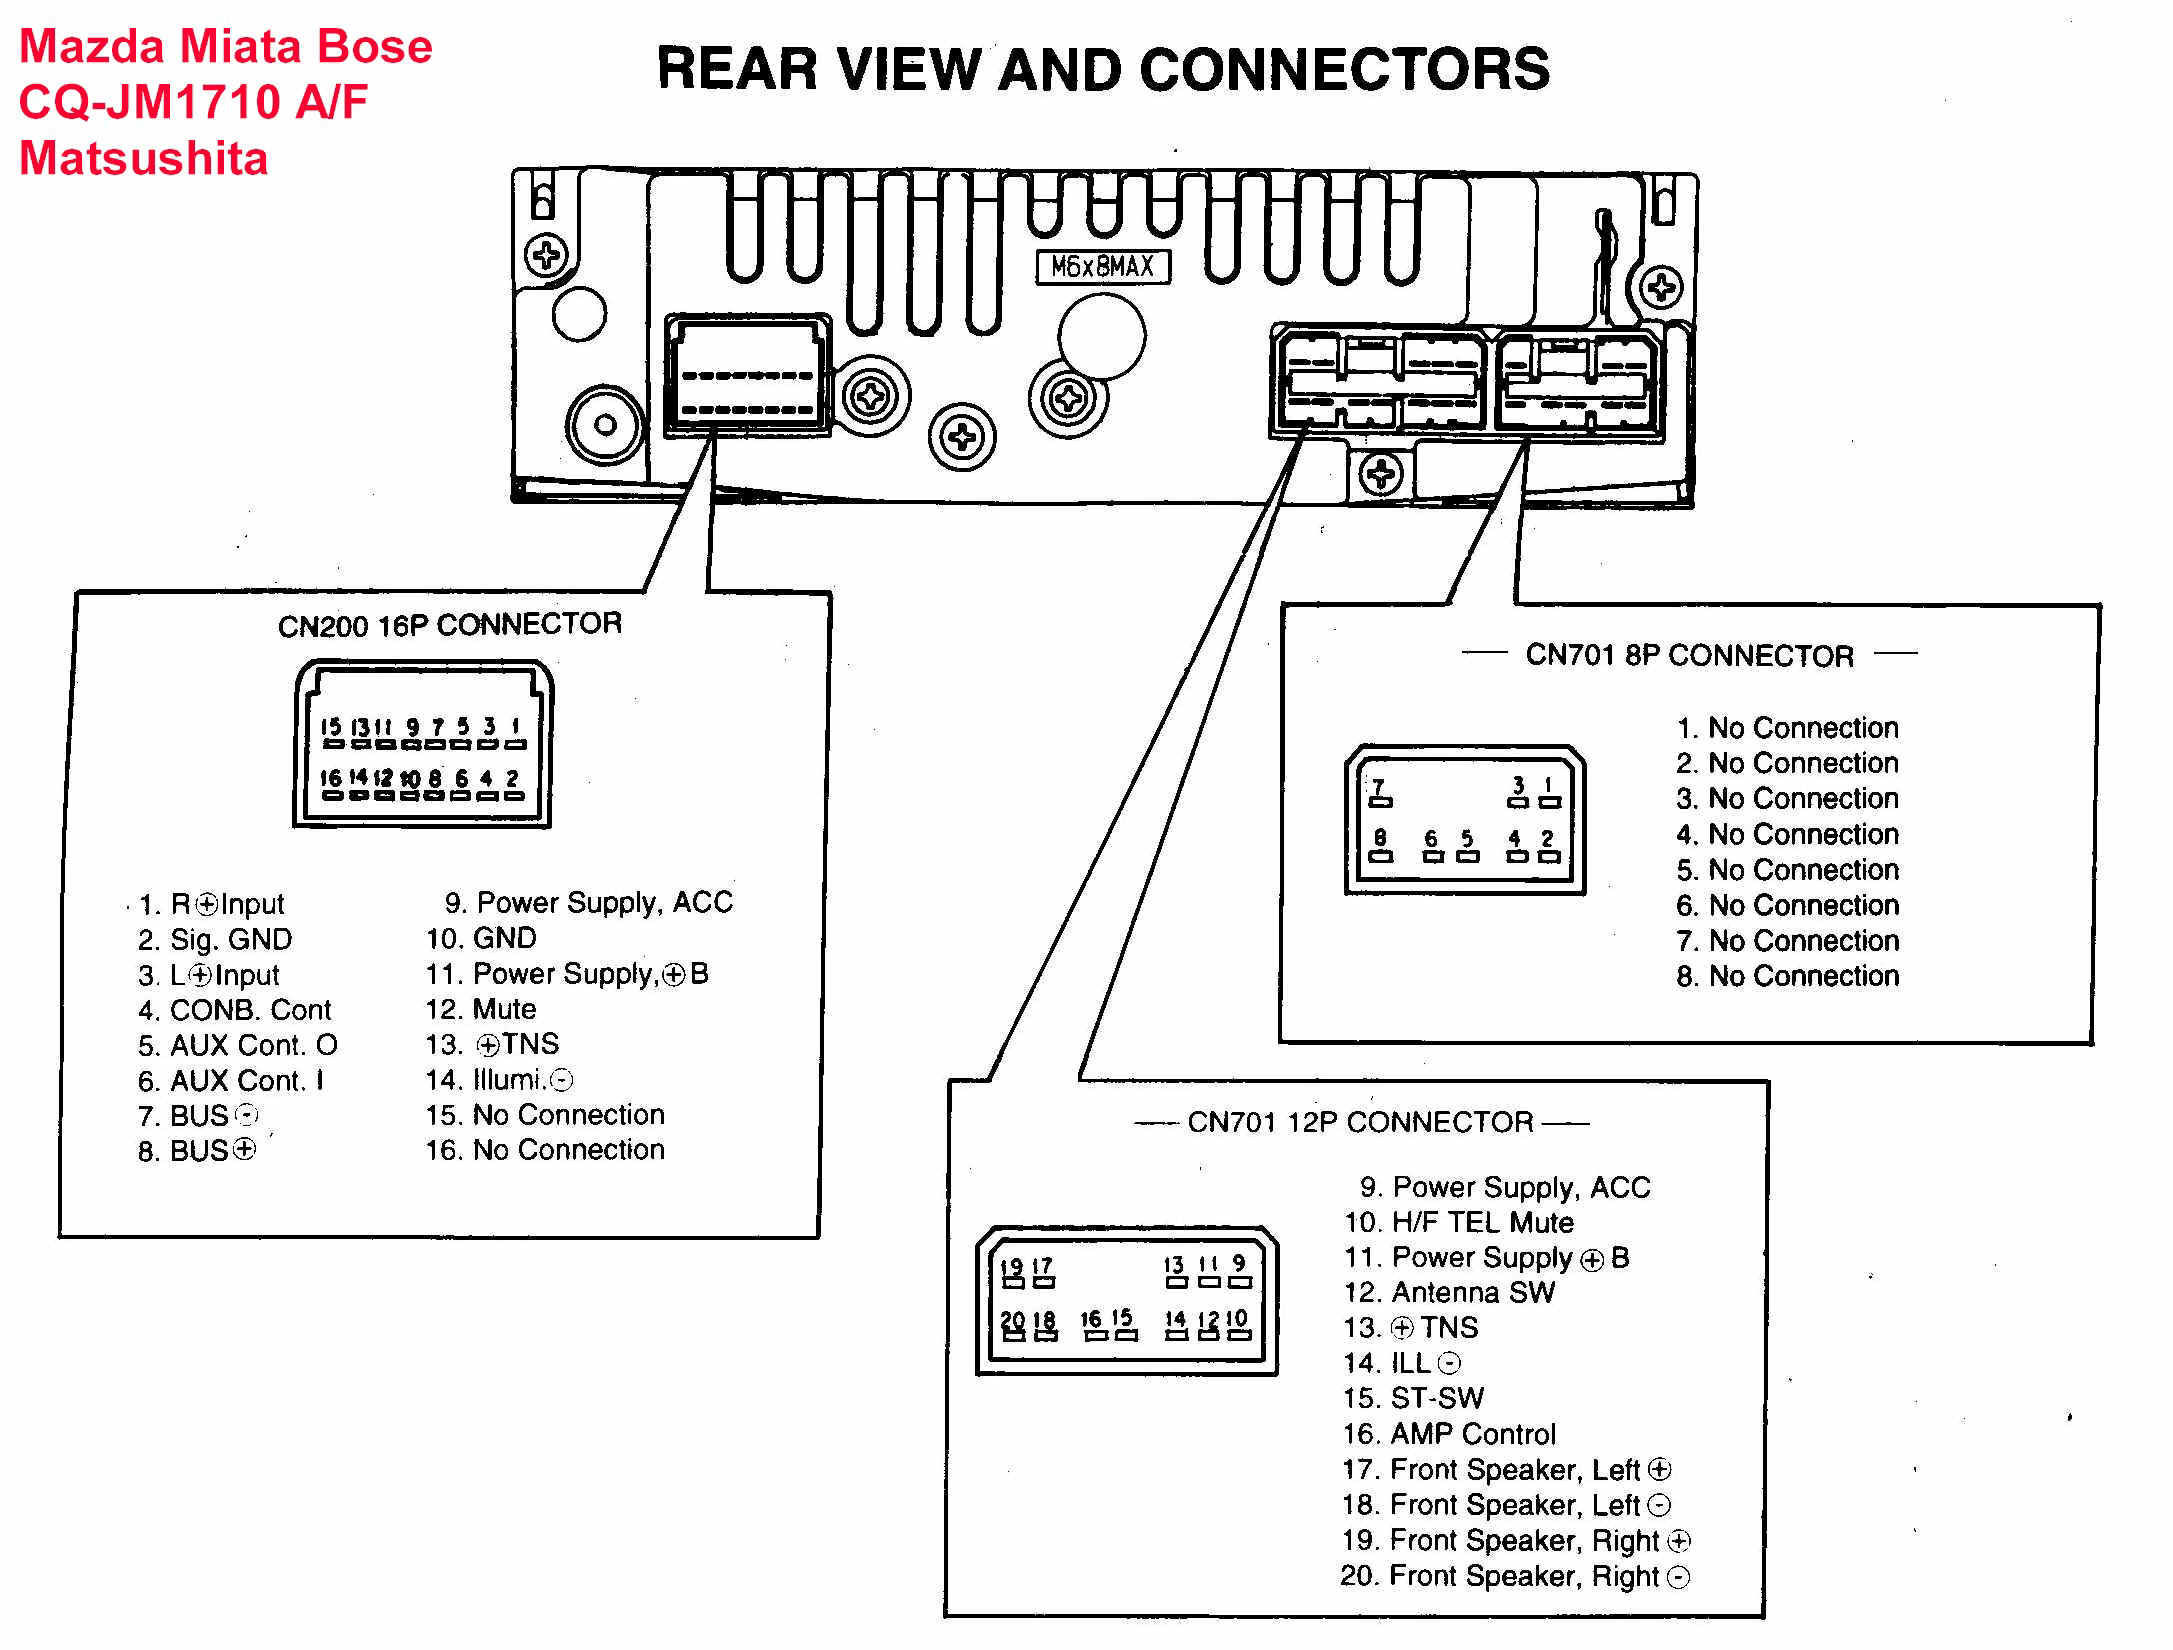 Mazda 3 Bose Amp Wiring Diagram : Car audio wire diagram codes mazda factory stereo